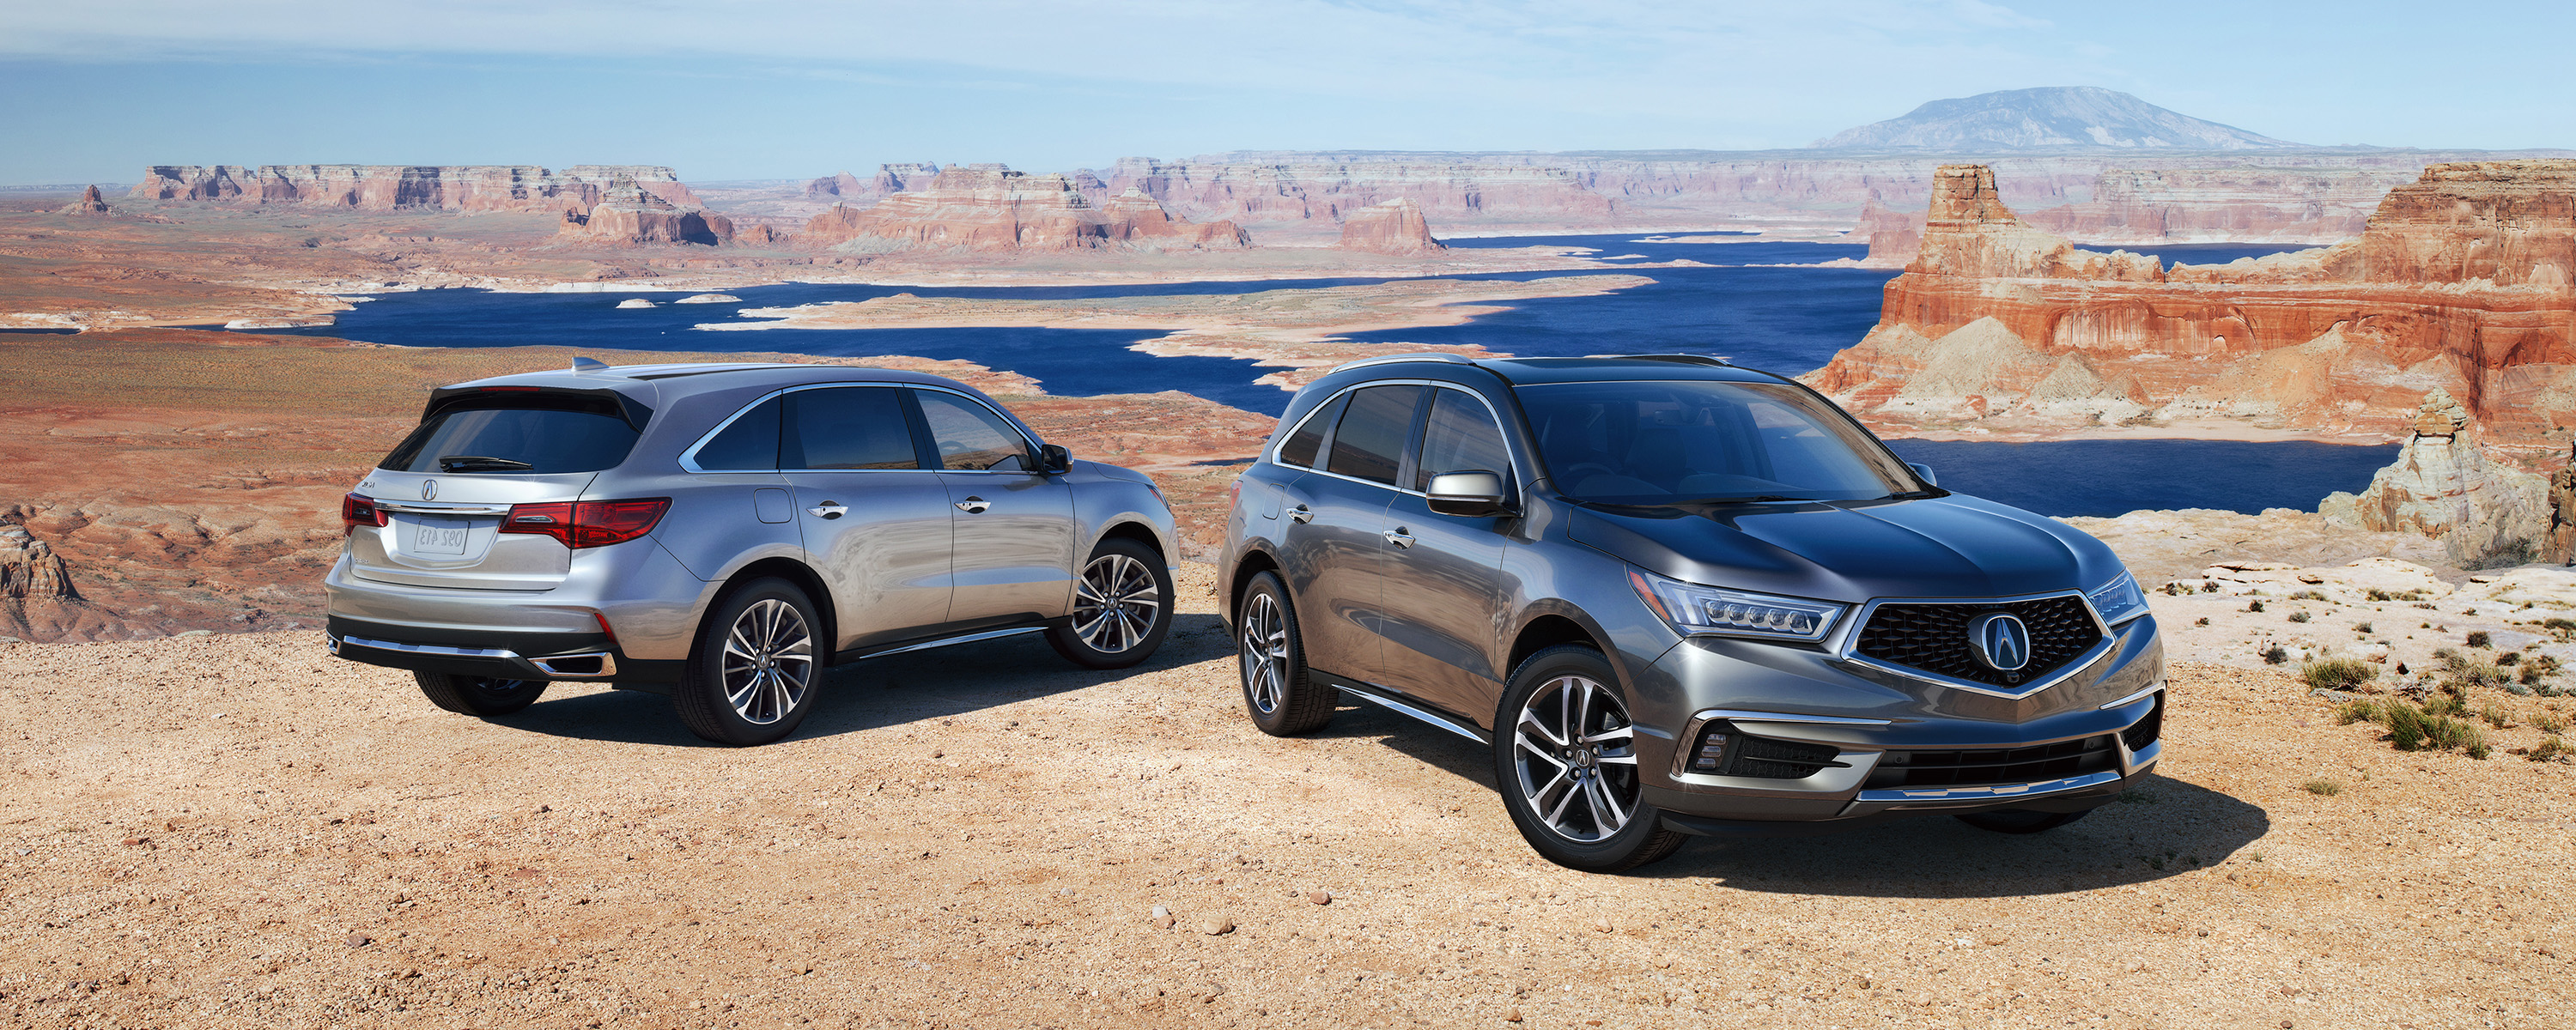 Acura Rdx Vs Mdx News Of New Car Release